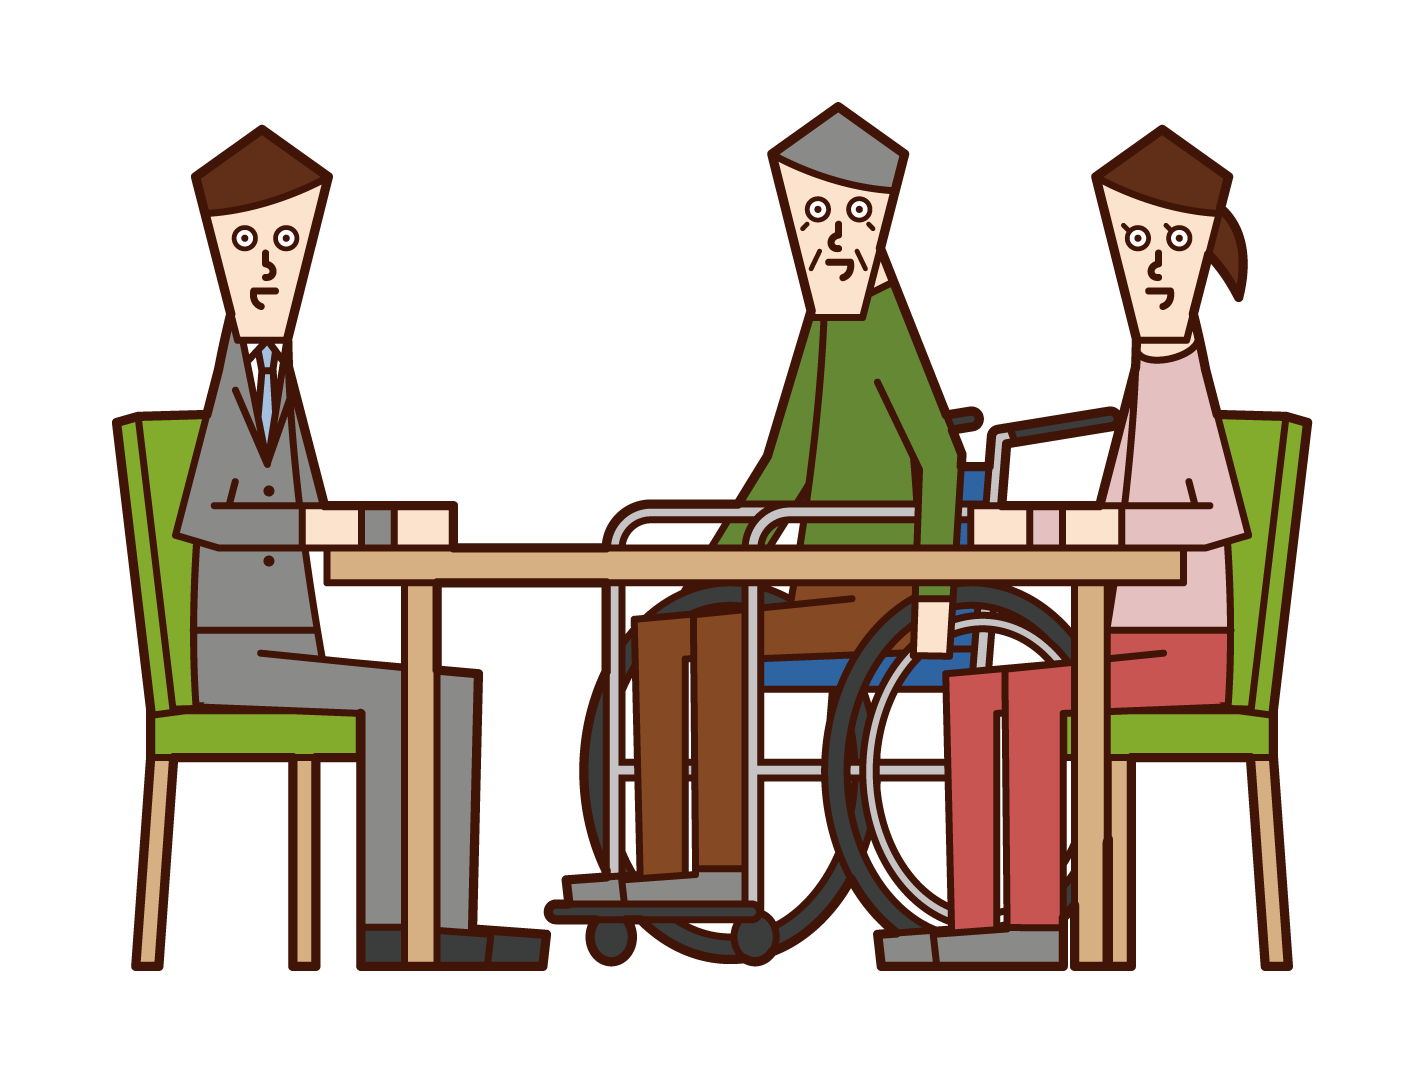 Illustration of a person and counselor who consults about nursing care